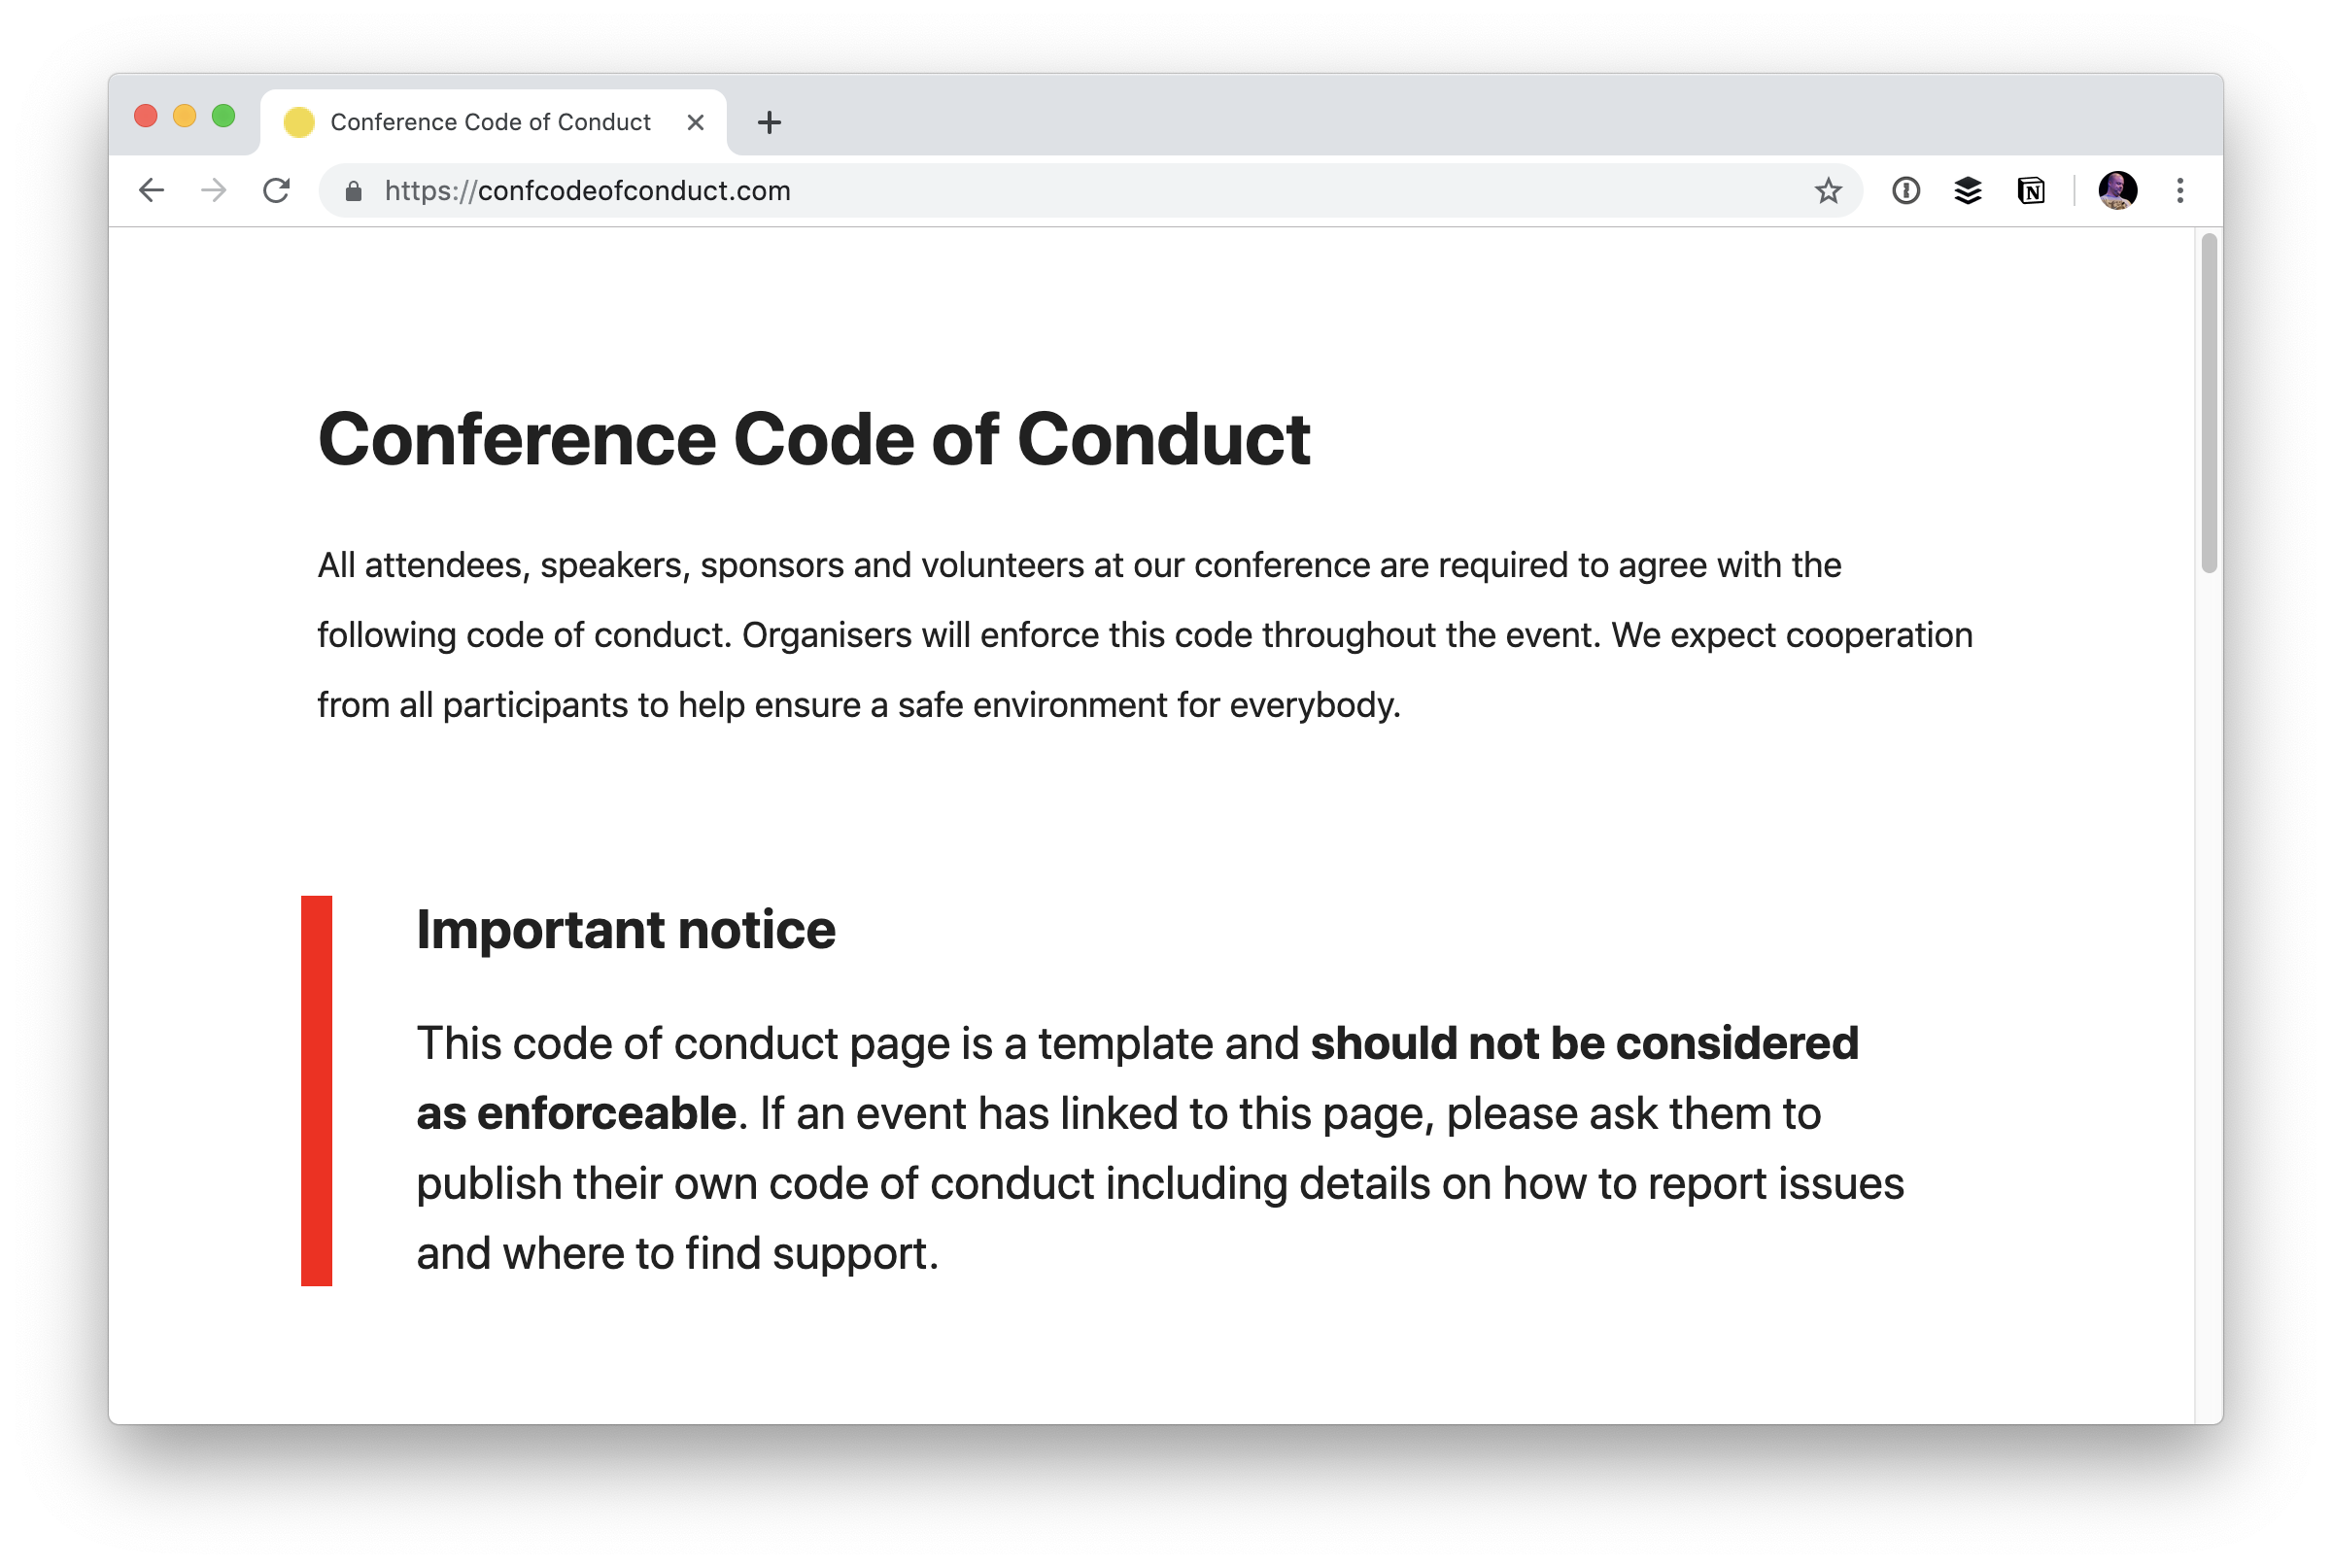 warning from https://confcodeofconduct.com/